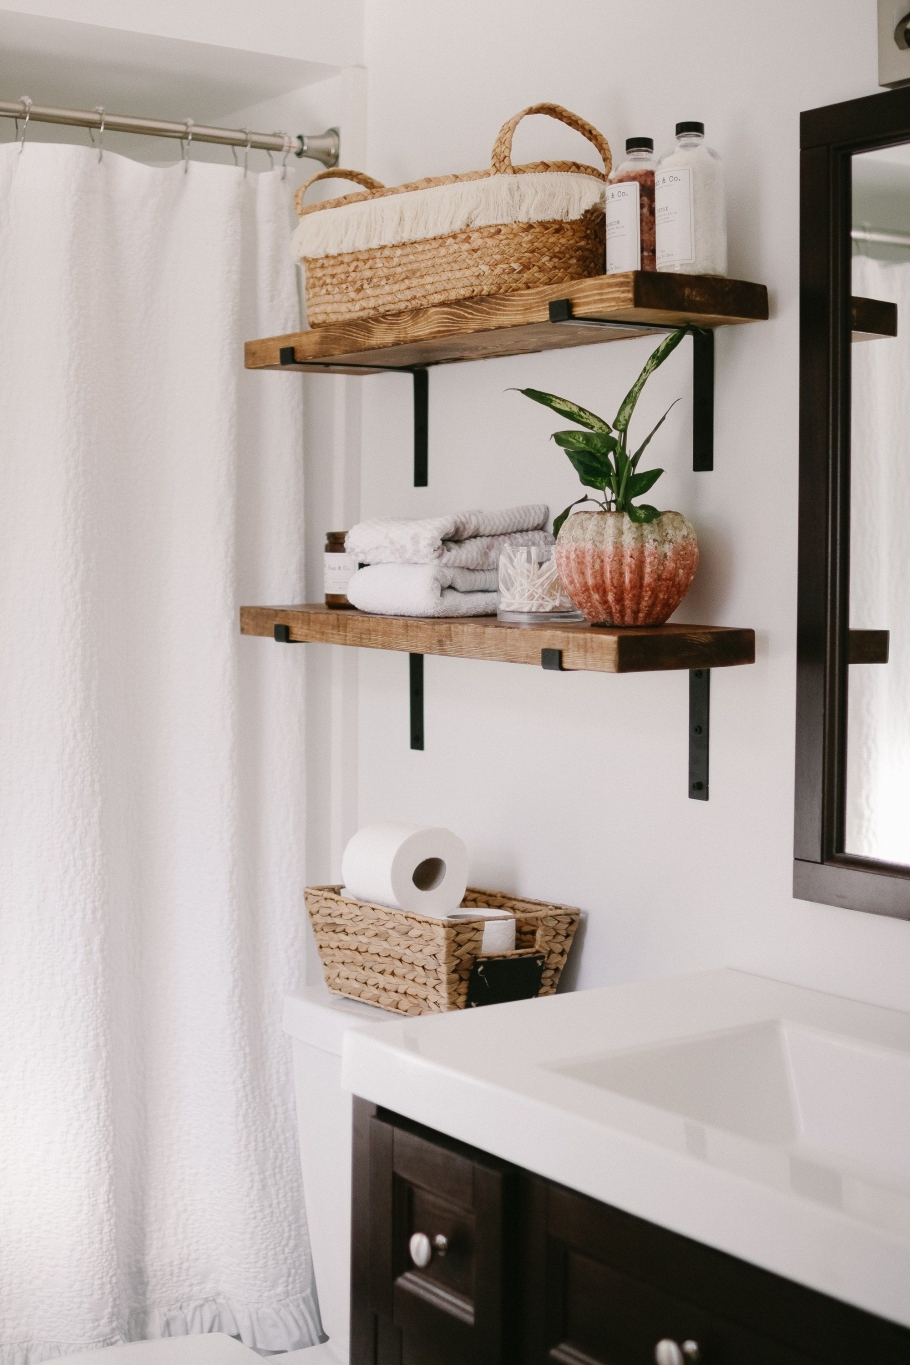 96 Models Bathroom Shelf with Industrial Farmhouse towel Bar - Tips for Buying It-9090